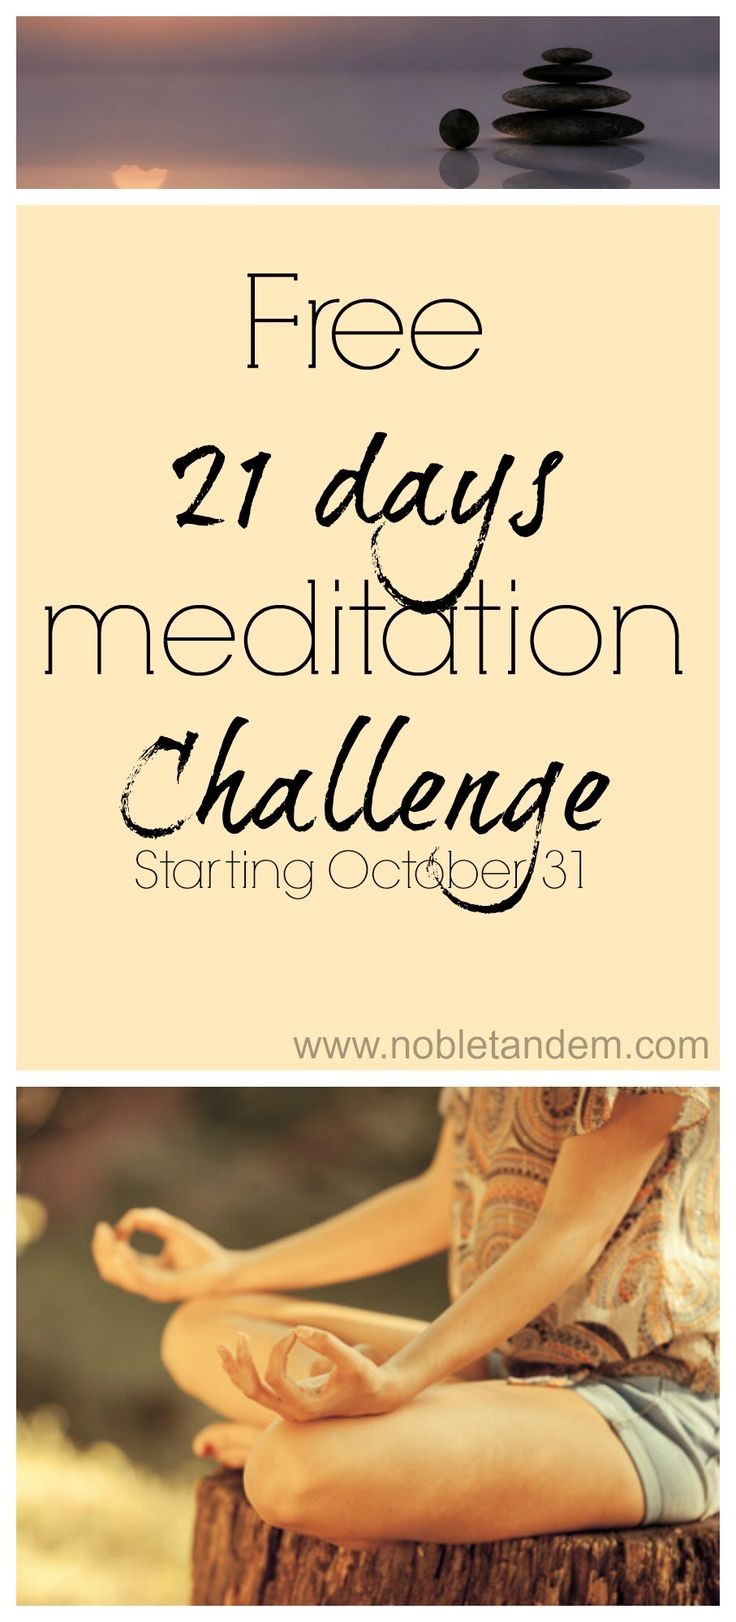 For this new challenge, which begins on the 31st of October the new theme is: Creating Peace from the Inside Out. I just think it's going to be a great one, I can't wait to start ! http://www.nobletandem.com/new-free-21-days-meditation-challenge-deepak-chopra/